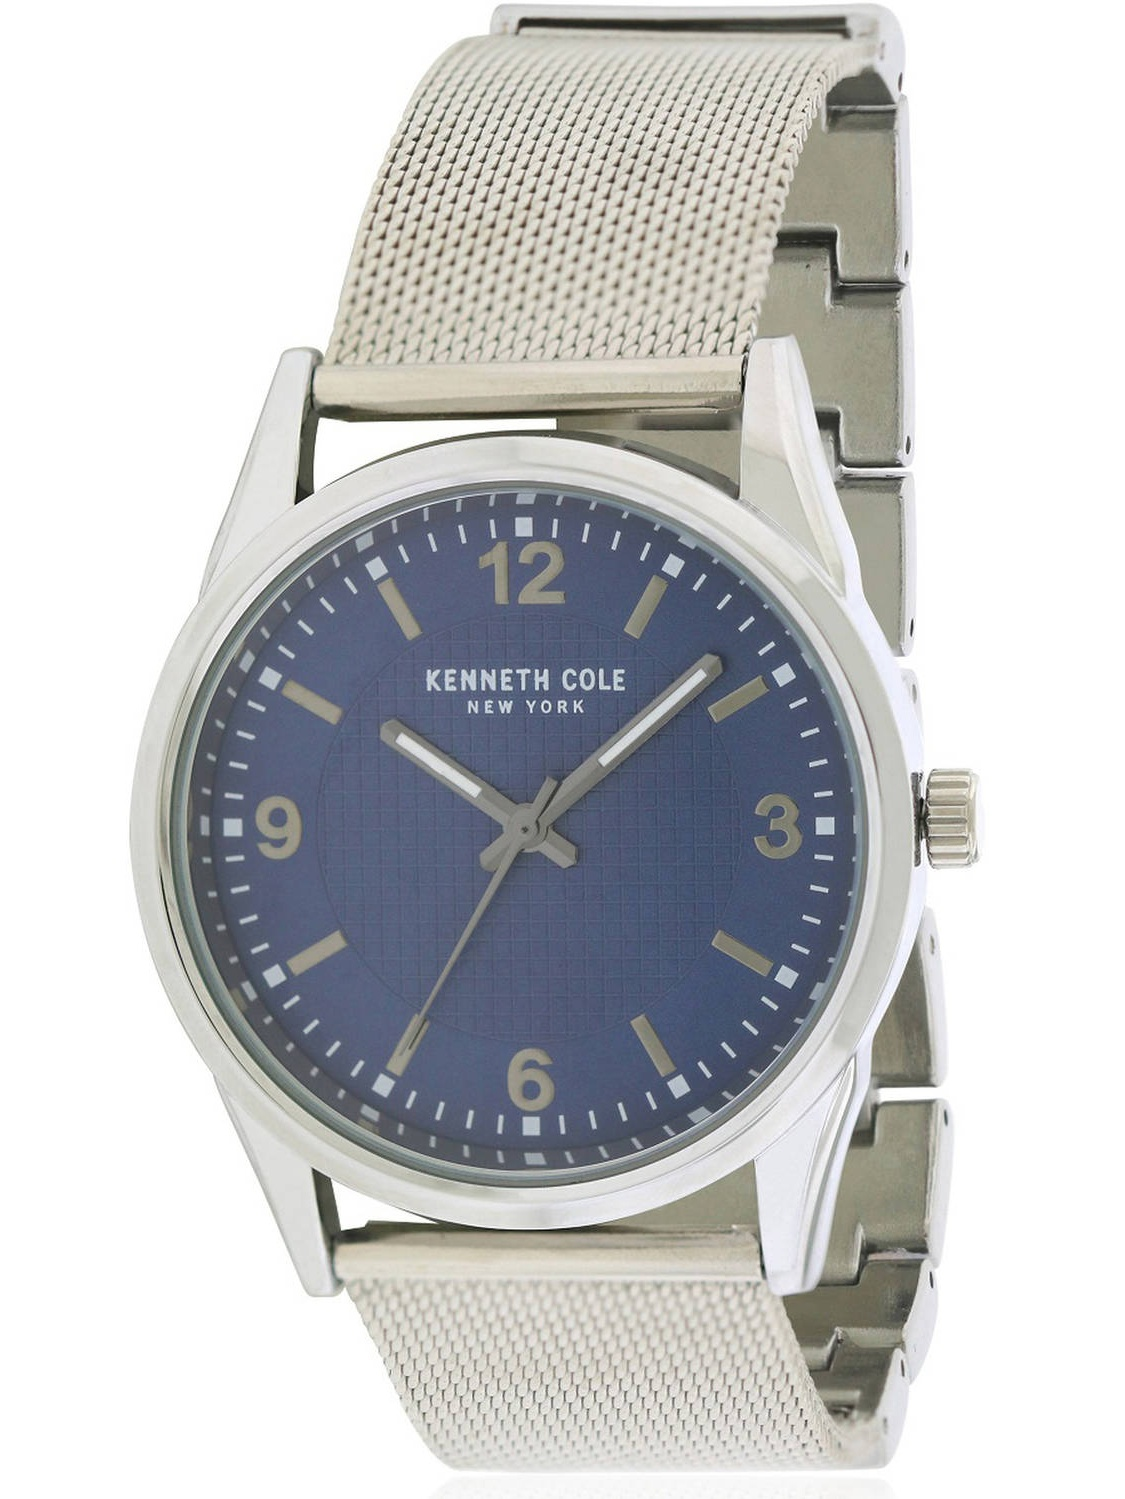 Stainless Steel Mens Watch 10030779